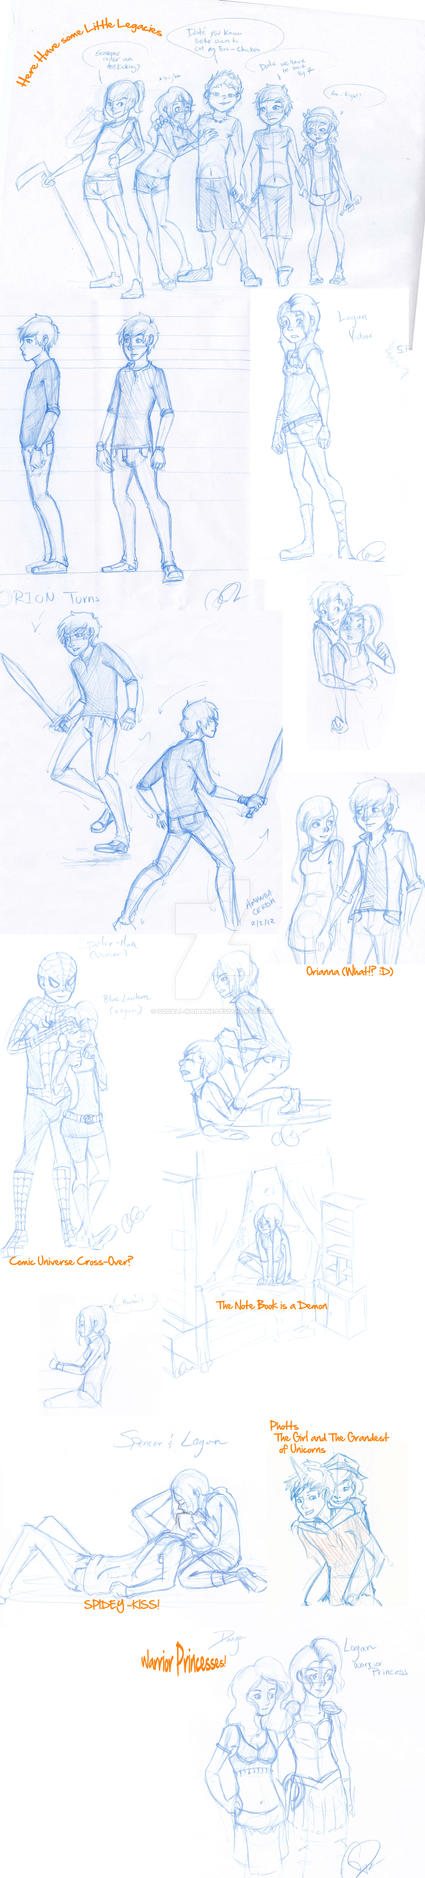 Sketch Dump of Awesome by Squall-Kaihane